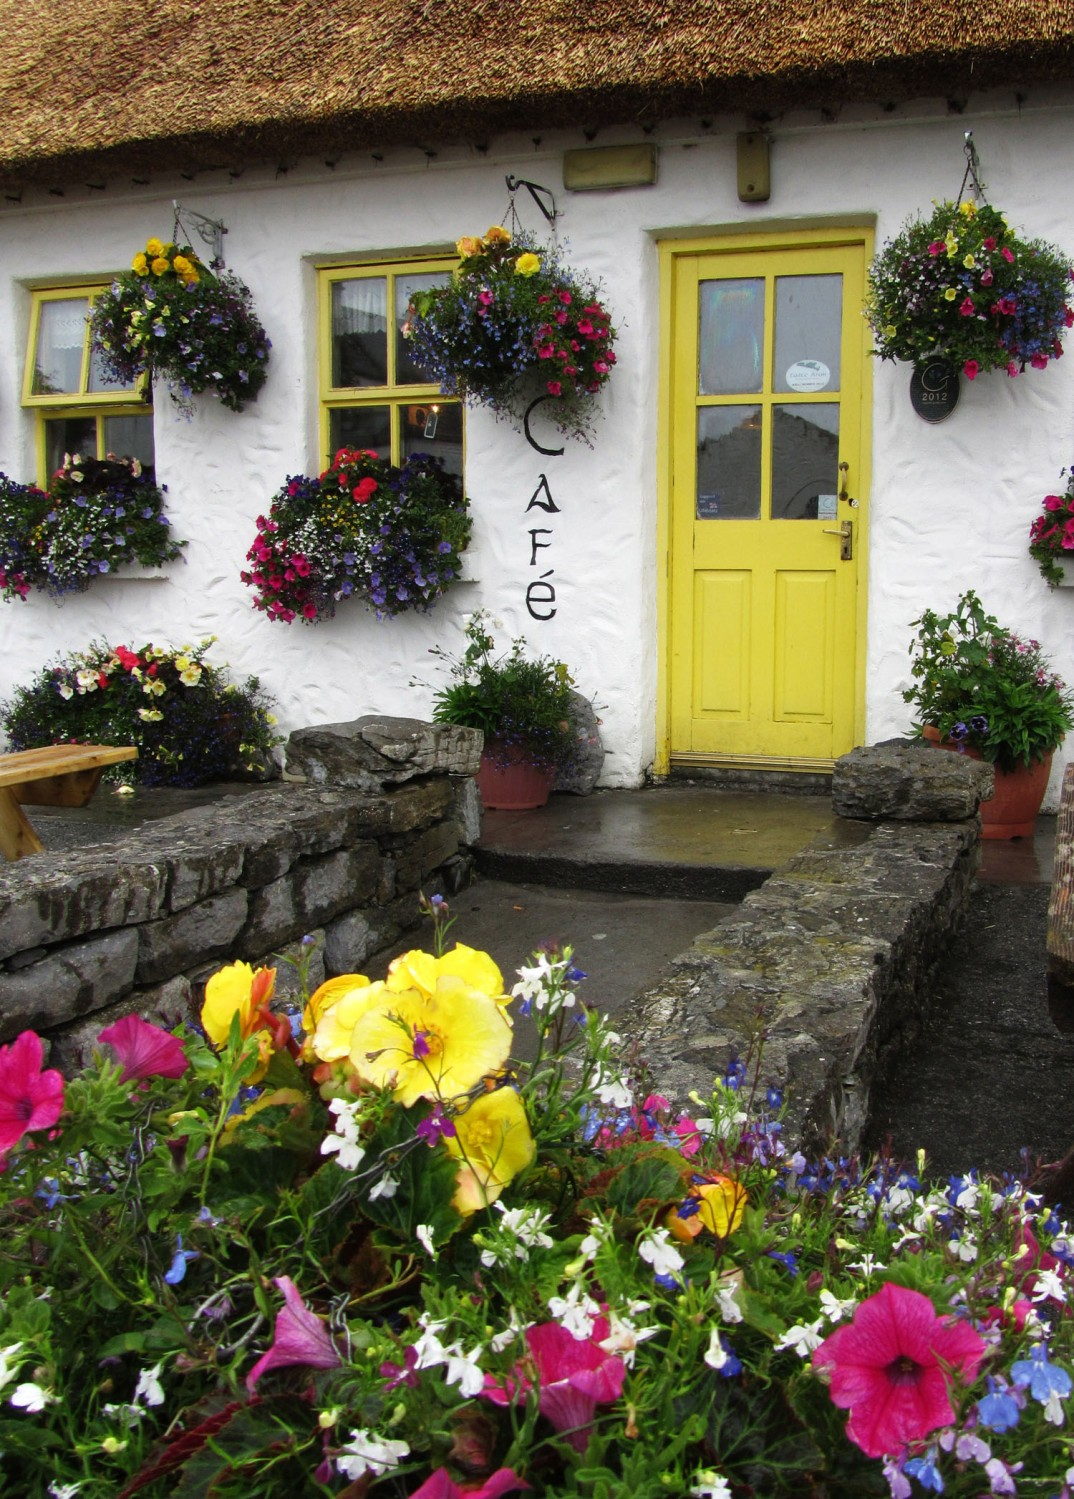 Ireland-Sights-And-Scenery-Aran-Islands-Inishmore-Cafe-Garden